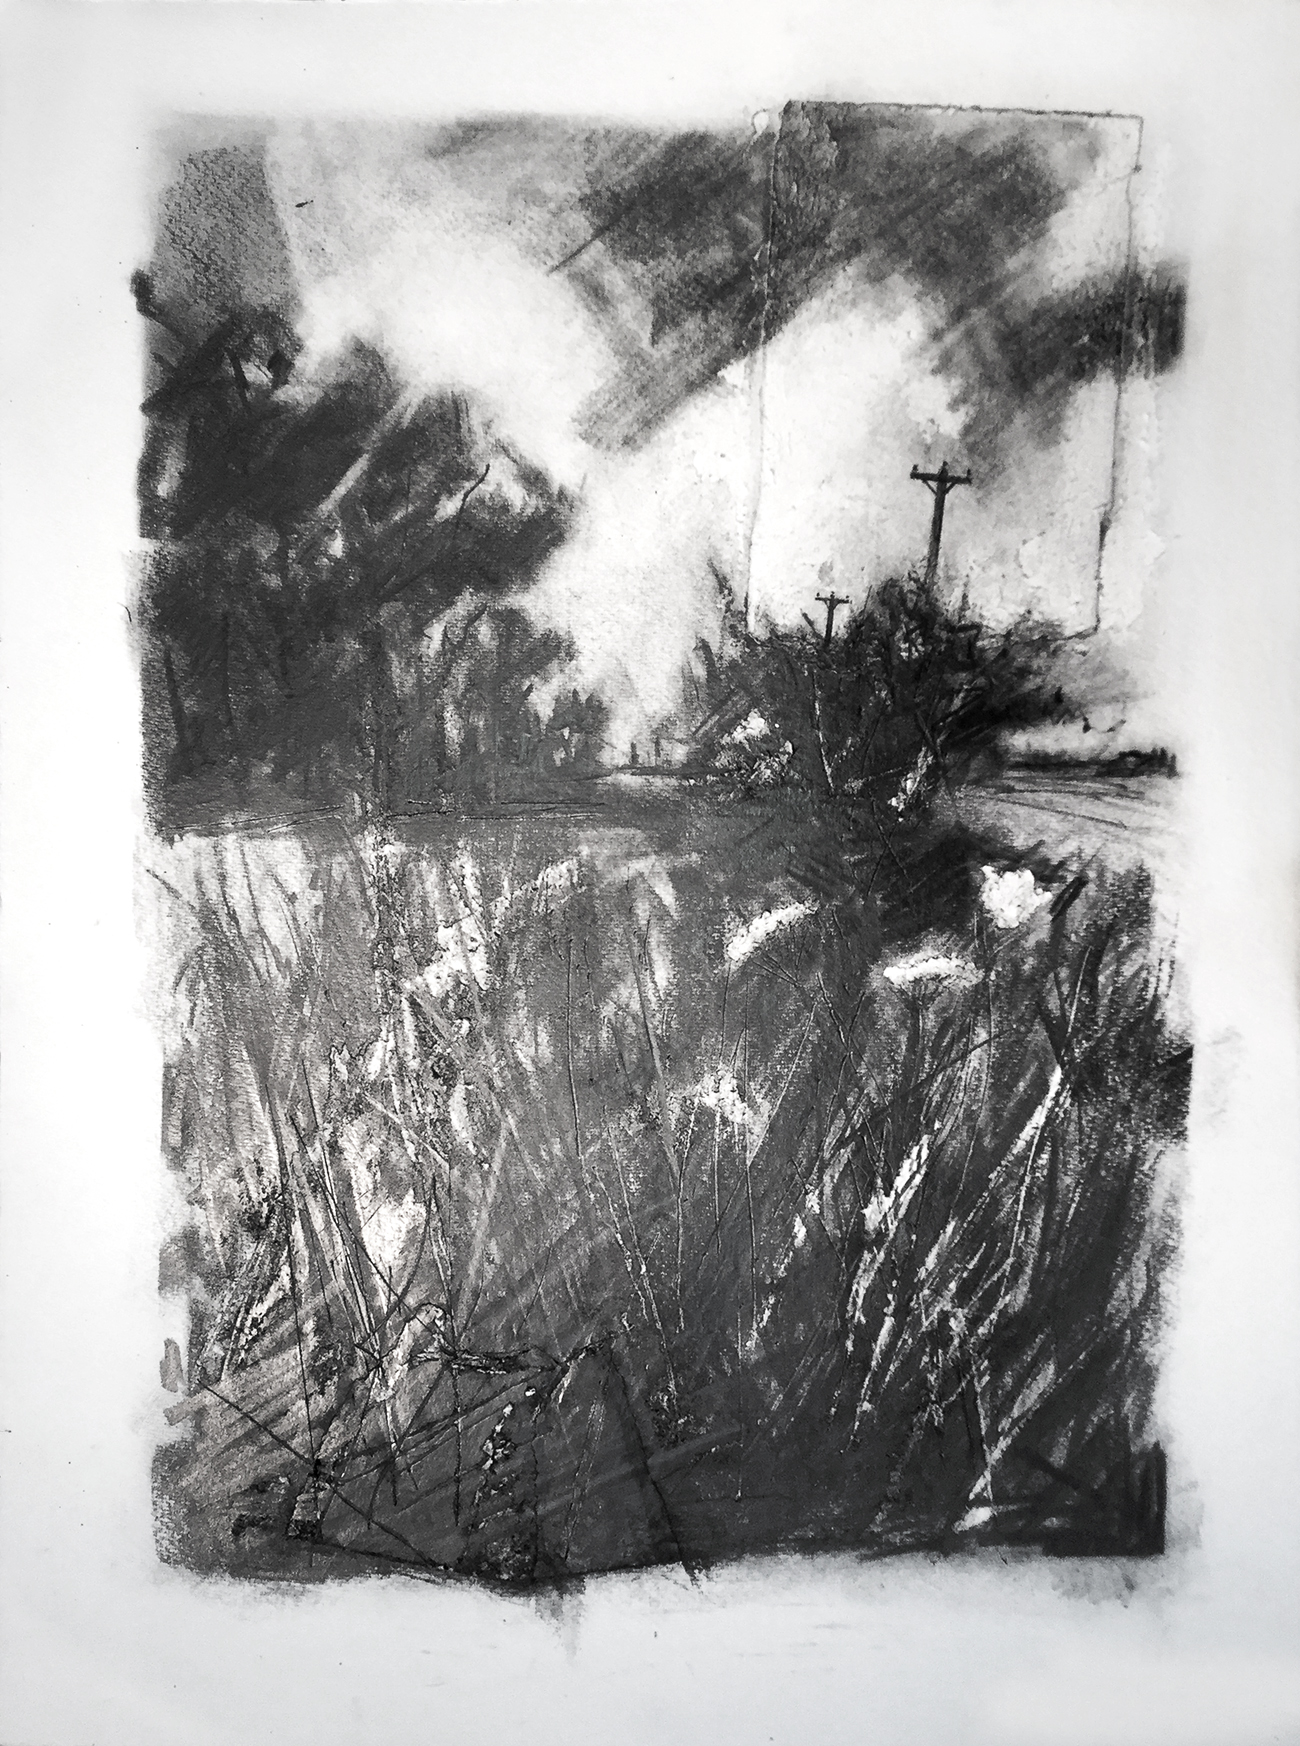 Roadside Verge, Stray Road, John D. Petty A drawing made in 2017 from sketches done the same year when the cow parsley was up high. I use the hard plastic eraser and sharp tools to extend the mark-making. Sometimes I might paste on new paper where the surface has become very abraded. Graphite on paper, 30x22 inches.